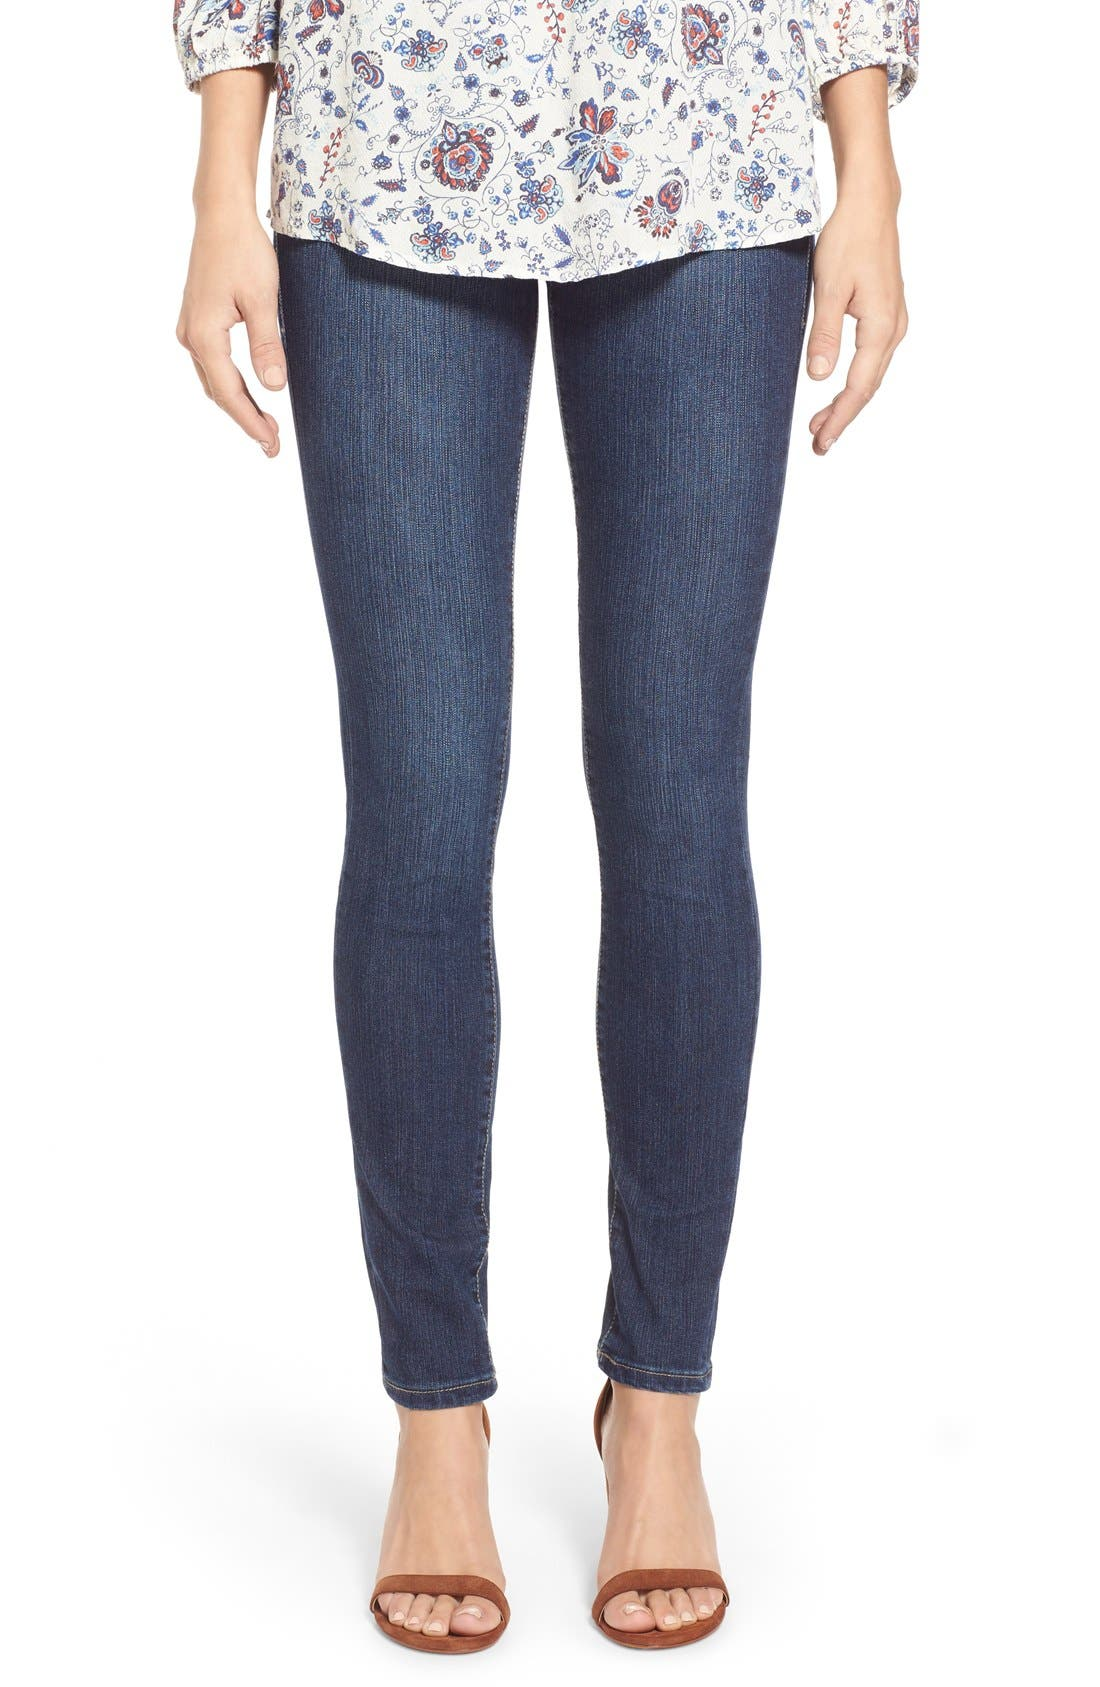 Alternate Image 1 Selected - Jag Jeans 'Nora' Pull-On Stretch Skinny Jeans (Anchor Blue) (Regular & Petite)